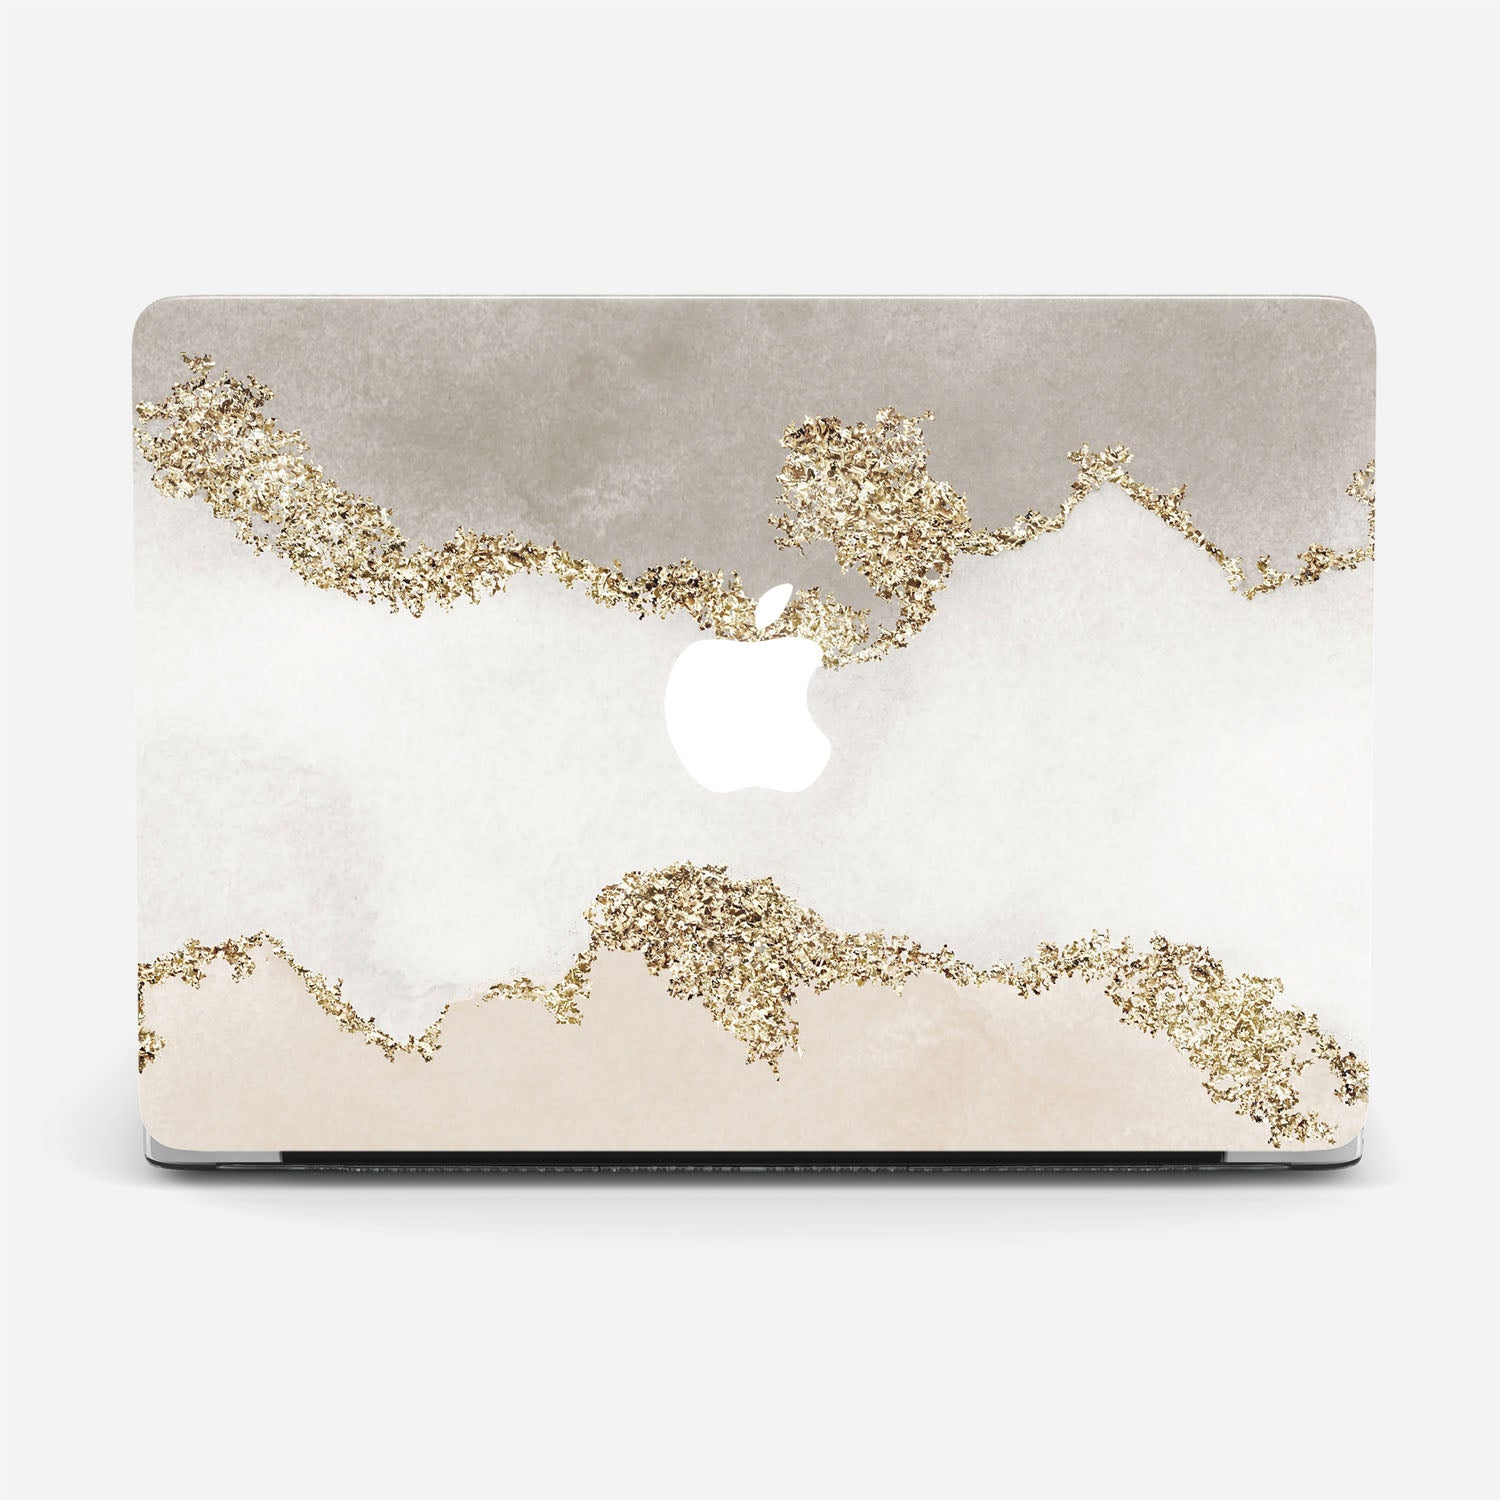 GOLDEN COAST Macbook Air 11 inch skins | Pigtou